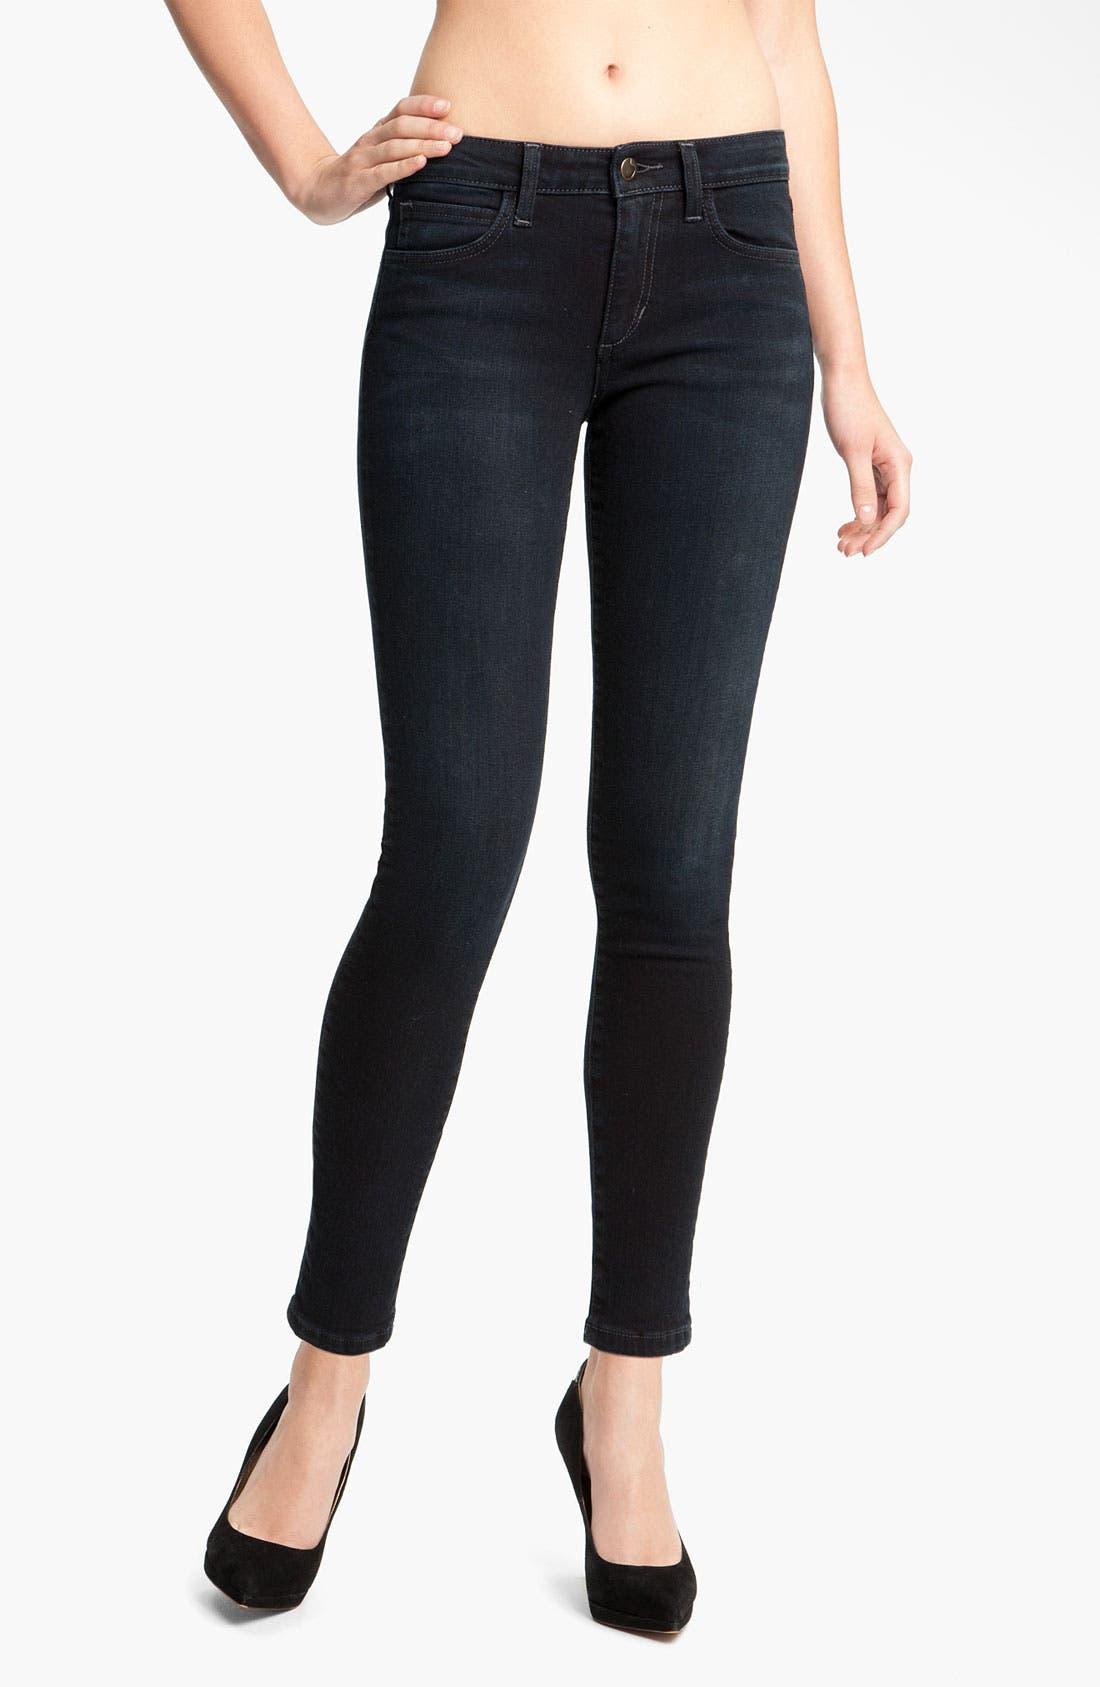 Skinny Stretch Ankle Jeans,                         Main,                         color, Tabitha Blue/ Black